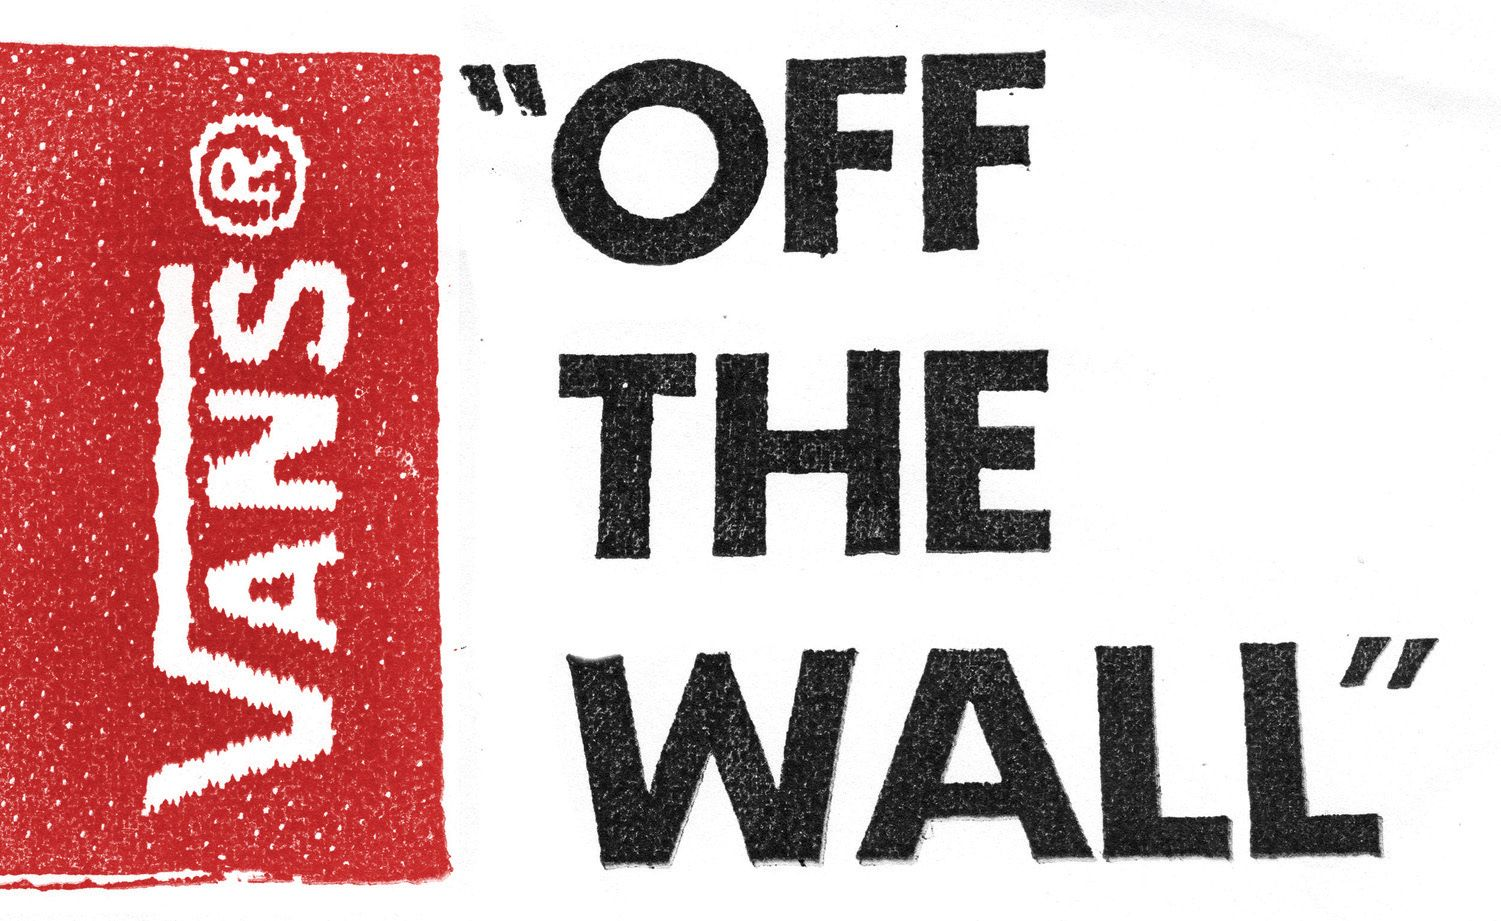 vans off the wall philippines careers